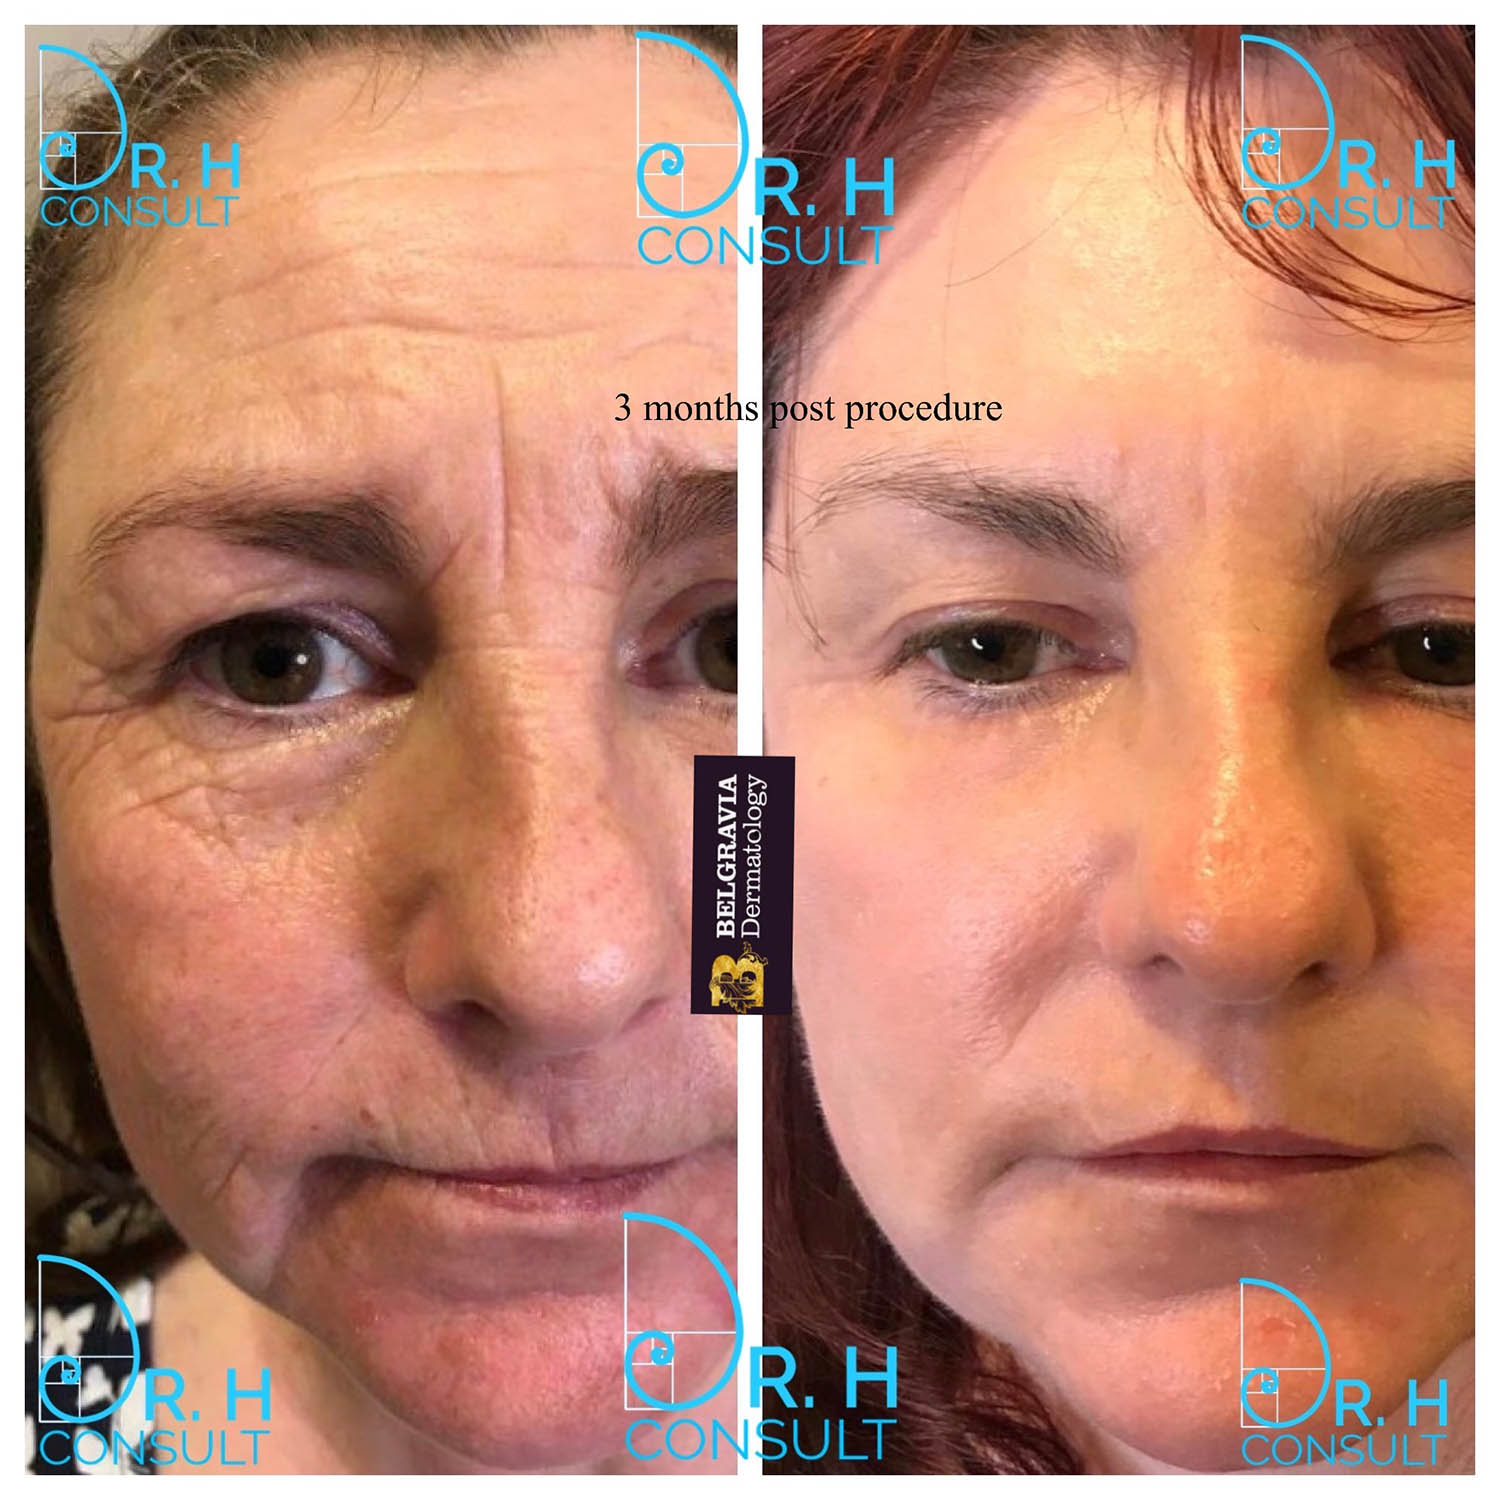 Fully Ablative Co2 Laser Resurfacing Treatment Dr H Consult